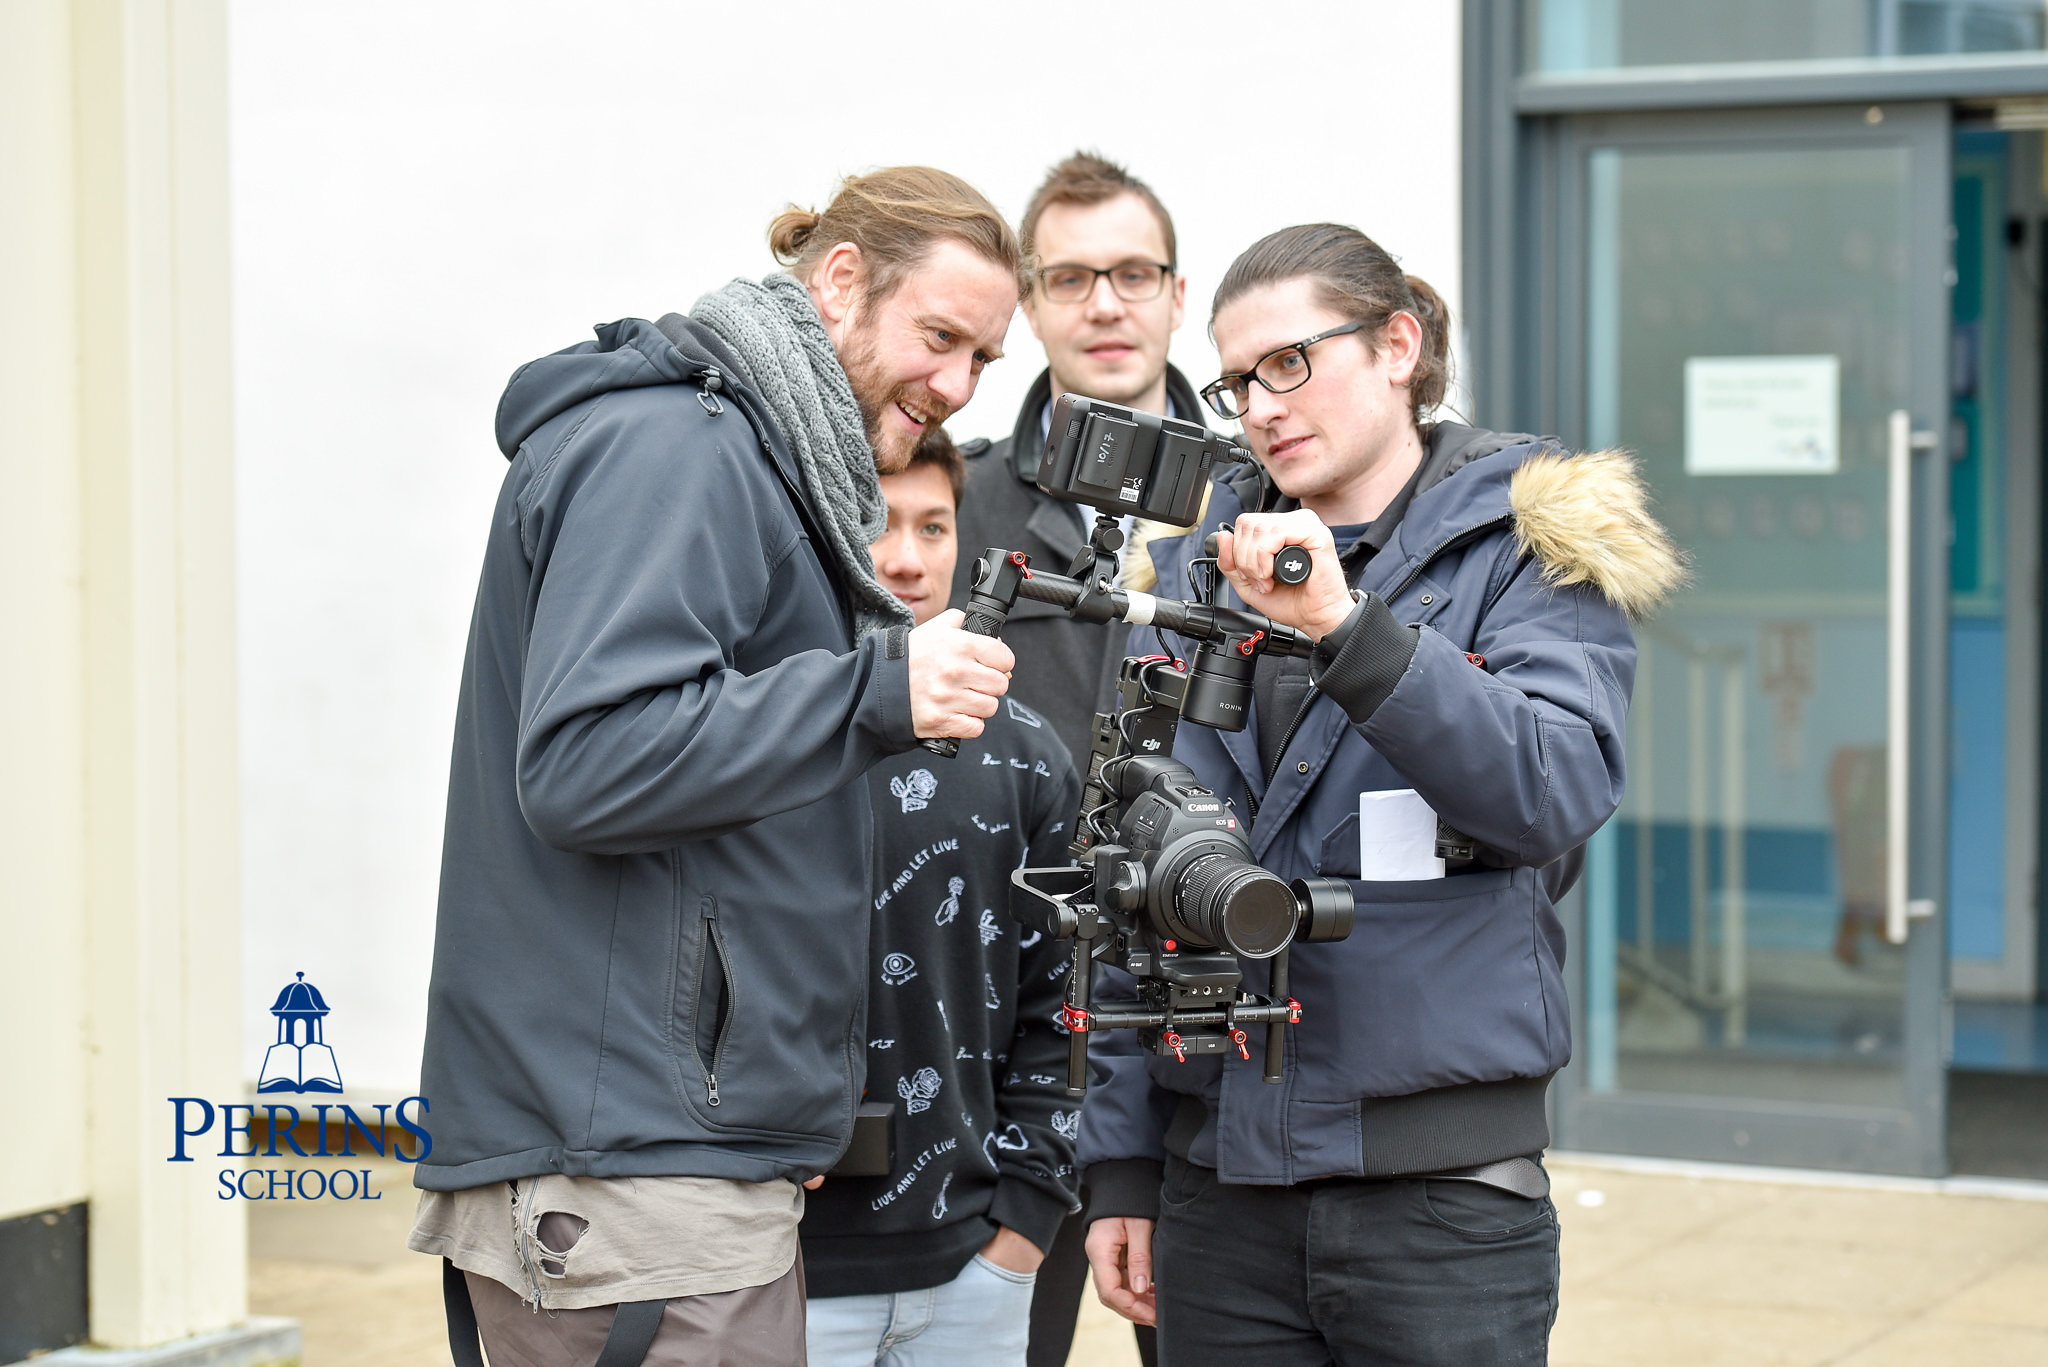 Filming with Perins School